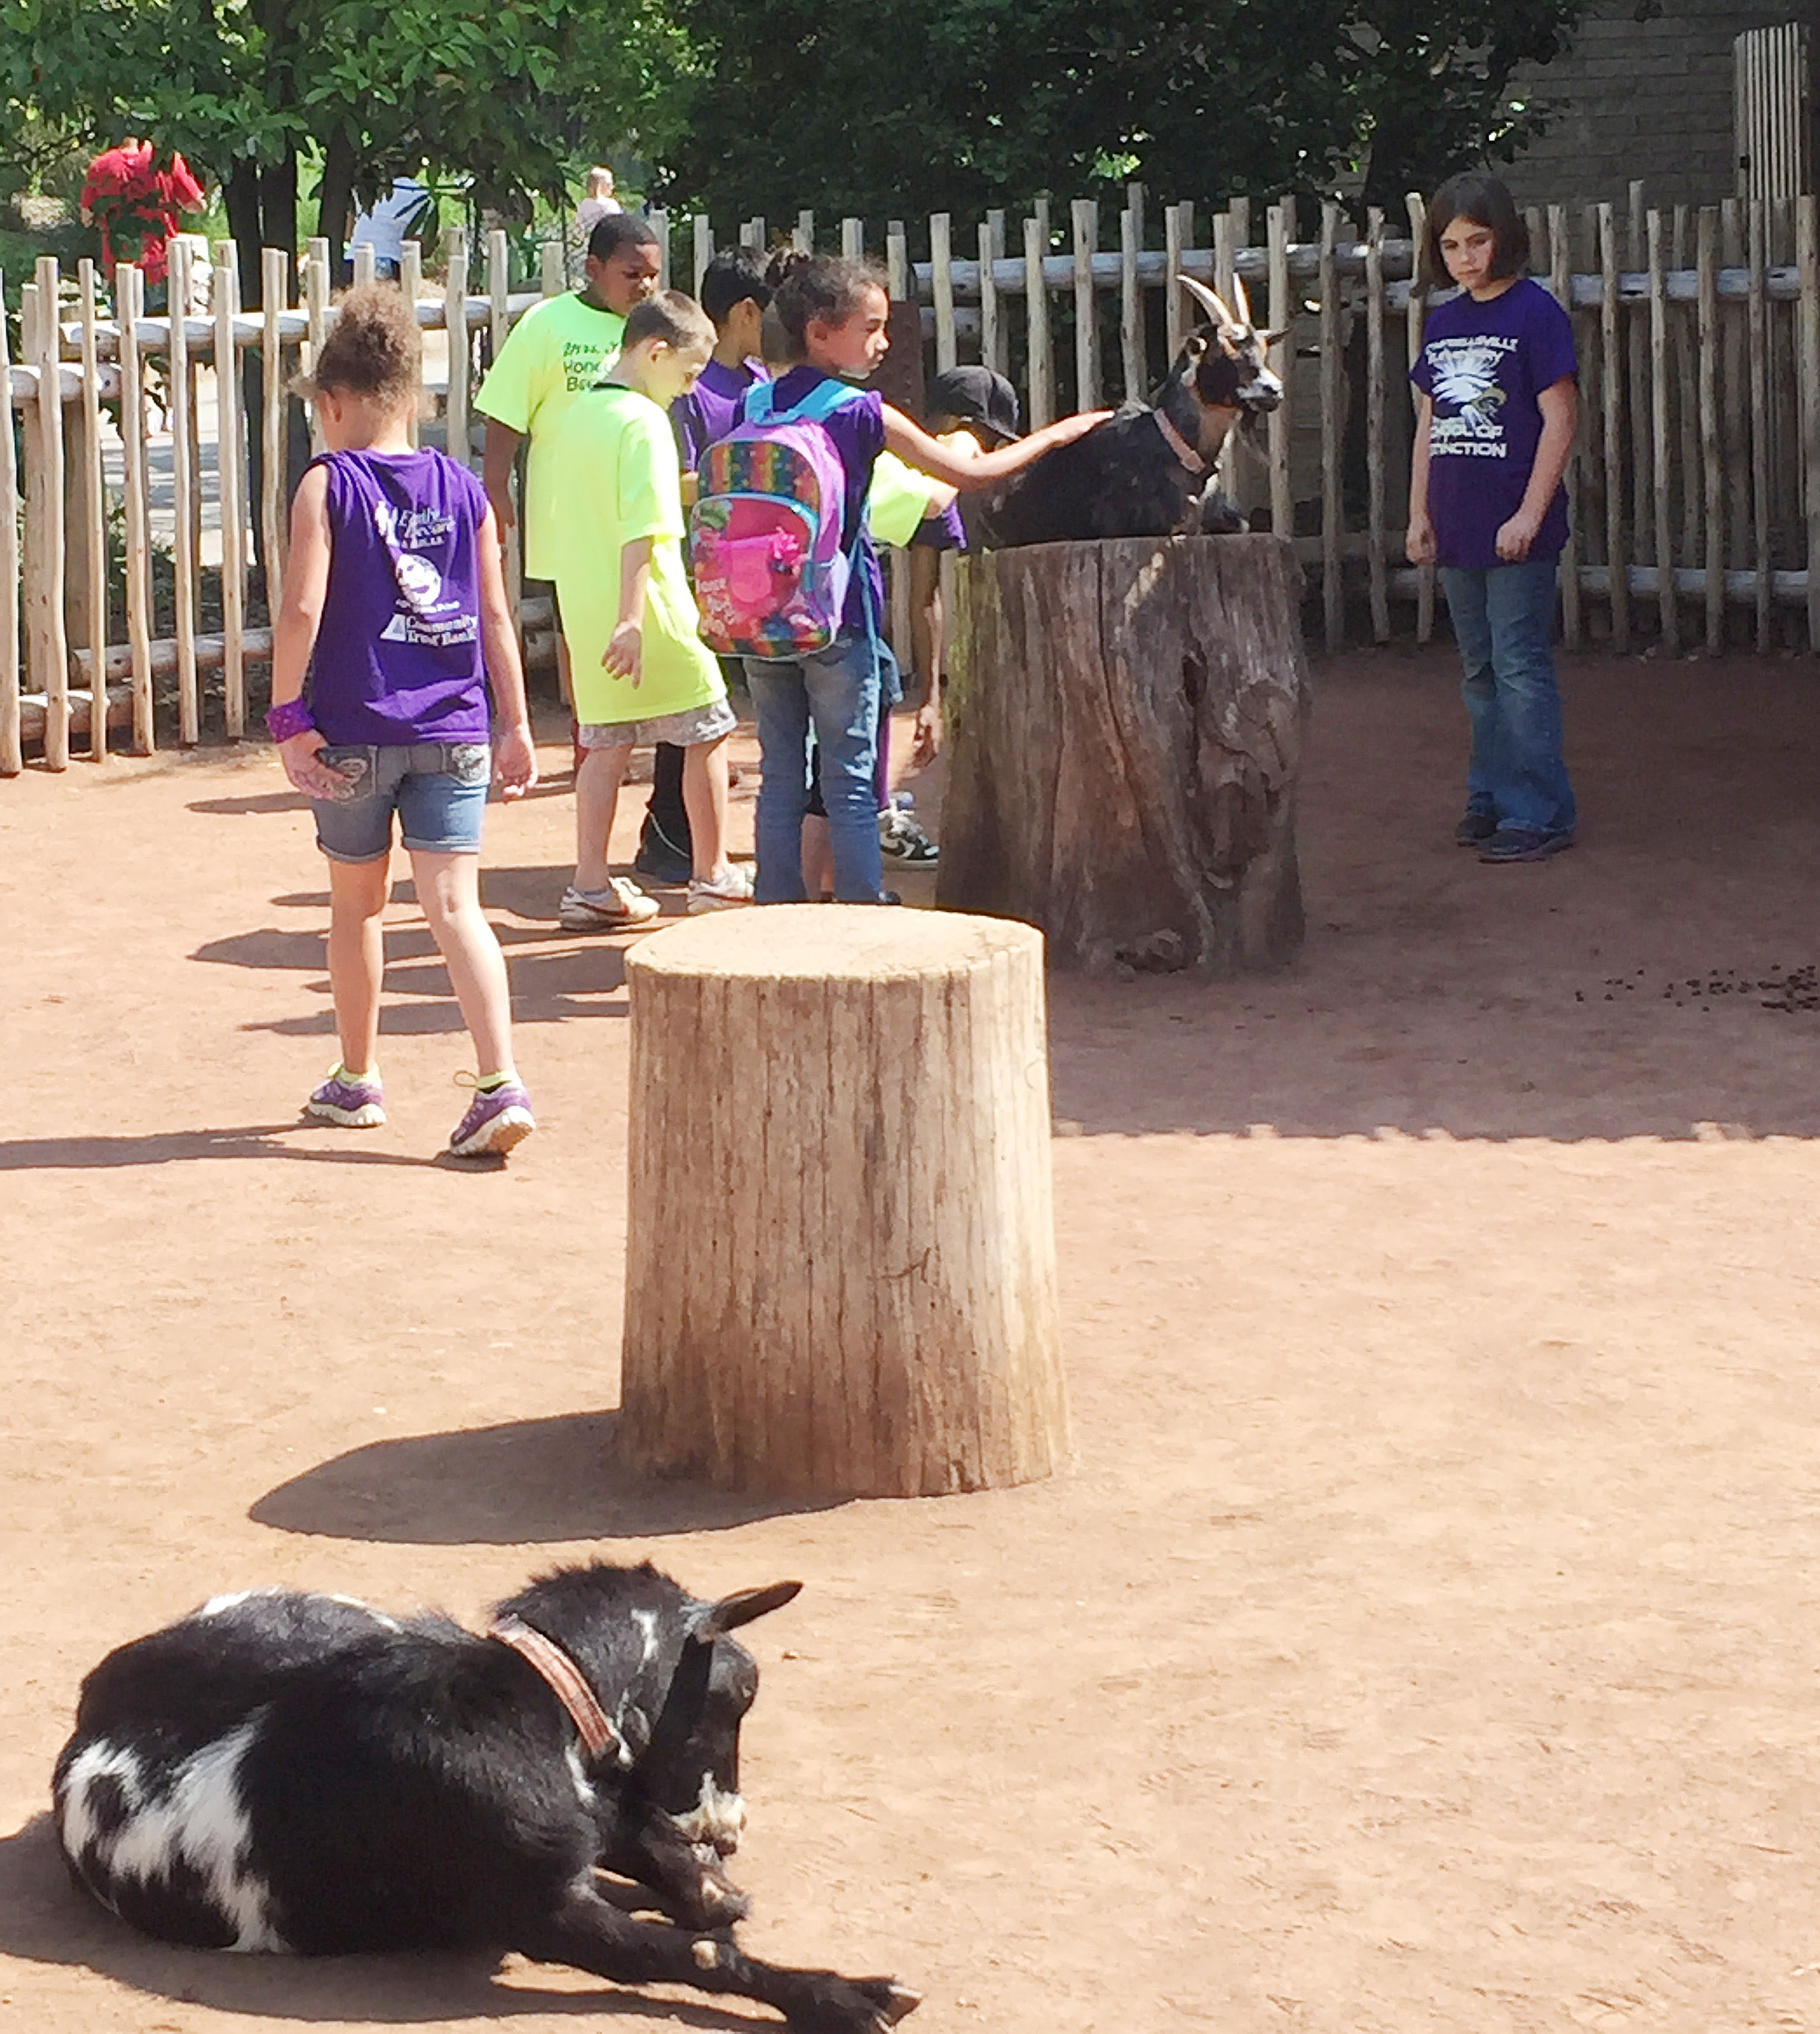 CES third-graders have fun at the petting zoo.